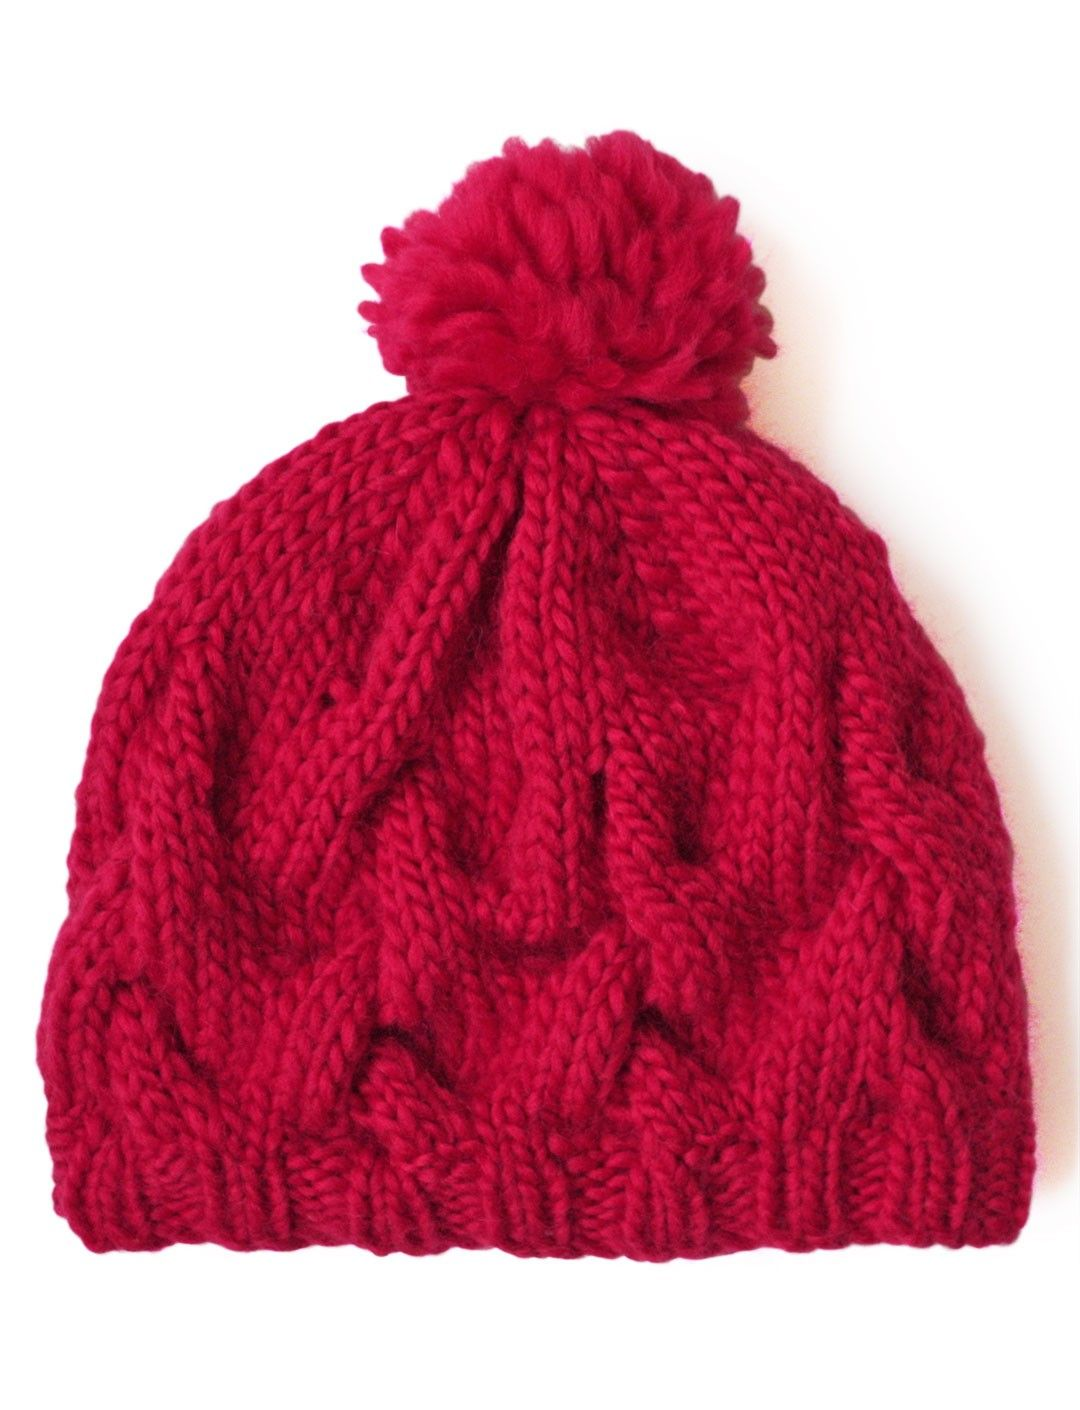 Yarnspirations patons cushy cable hat free pattern knit yarnspirations patons cushy cable hat free pattern knit intermediate bankloansurffo Image collections